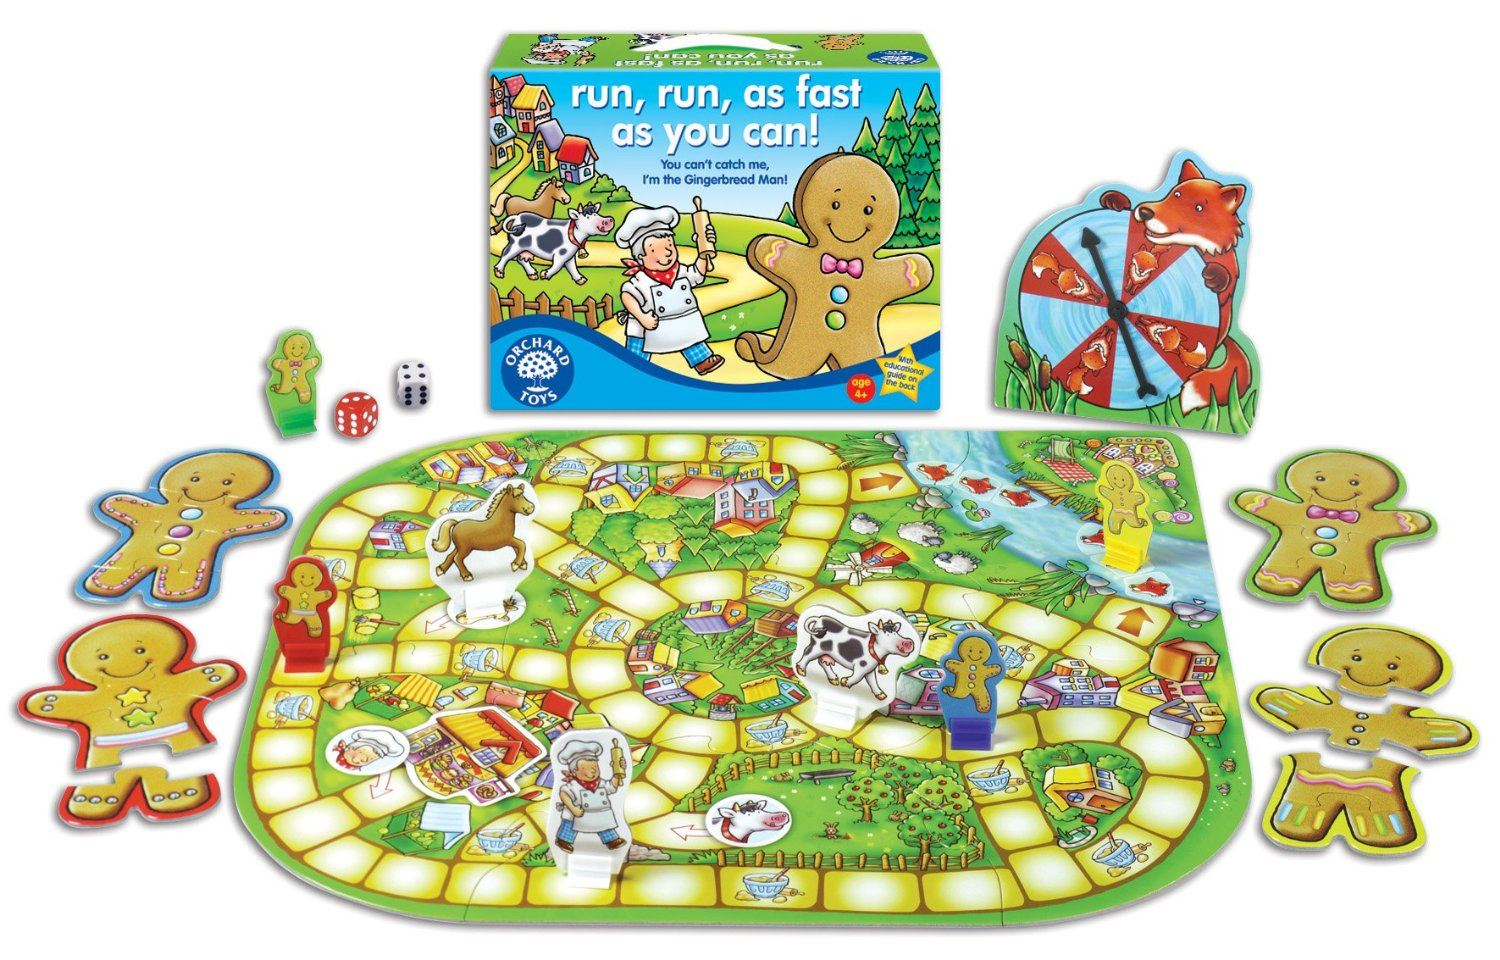 thumbnail 251 - Orchard Toys Educational Games For Kids Choose Game From Drop Down Menu